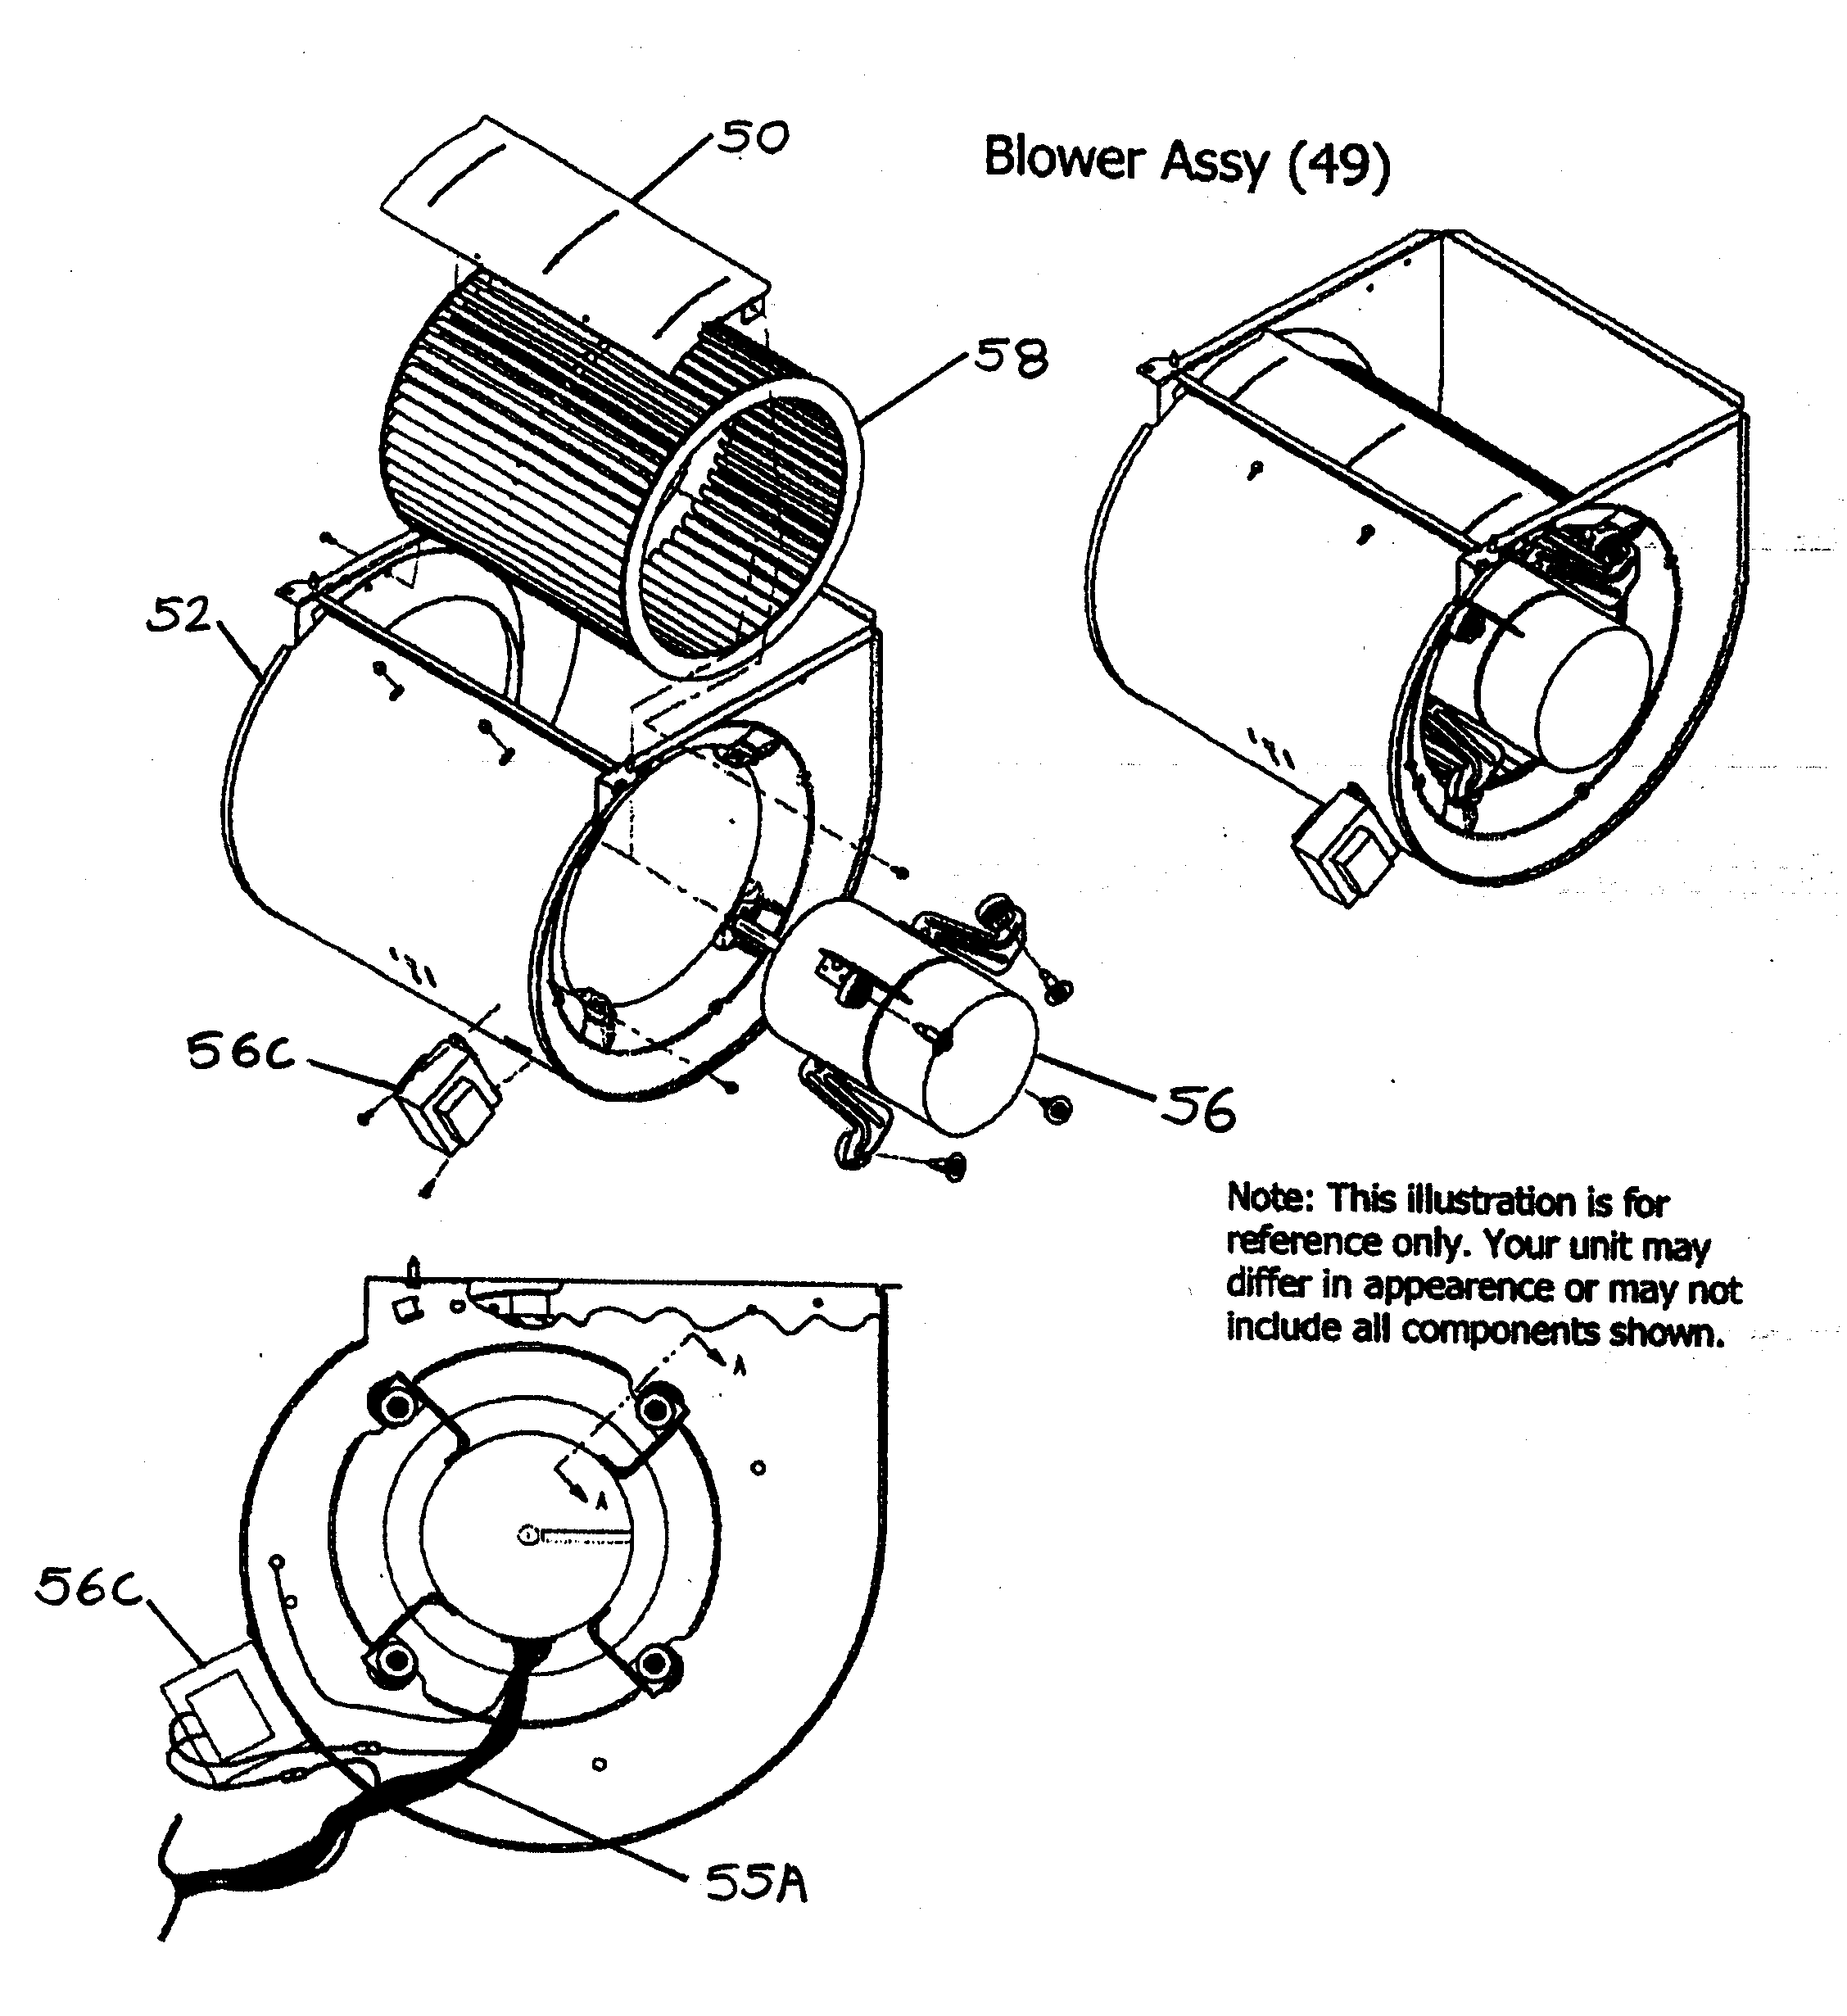 BLOWER ASSY Diagram & Parts List for Model